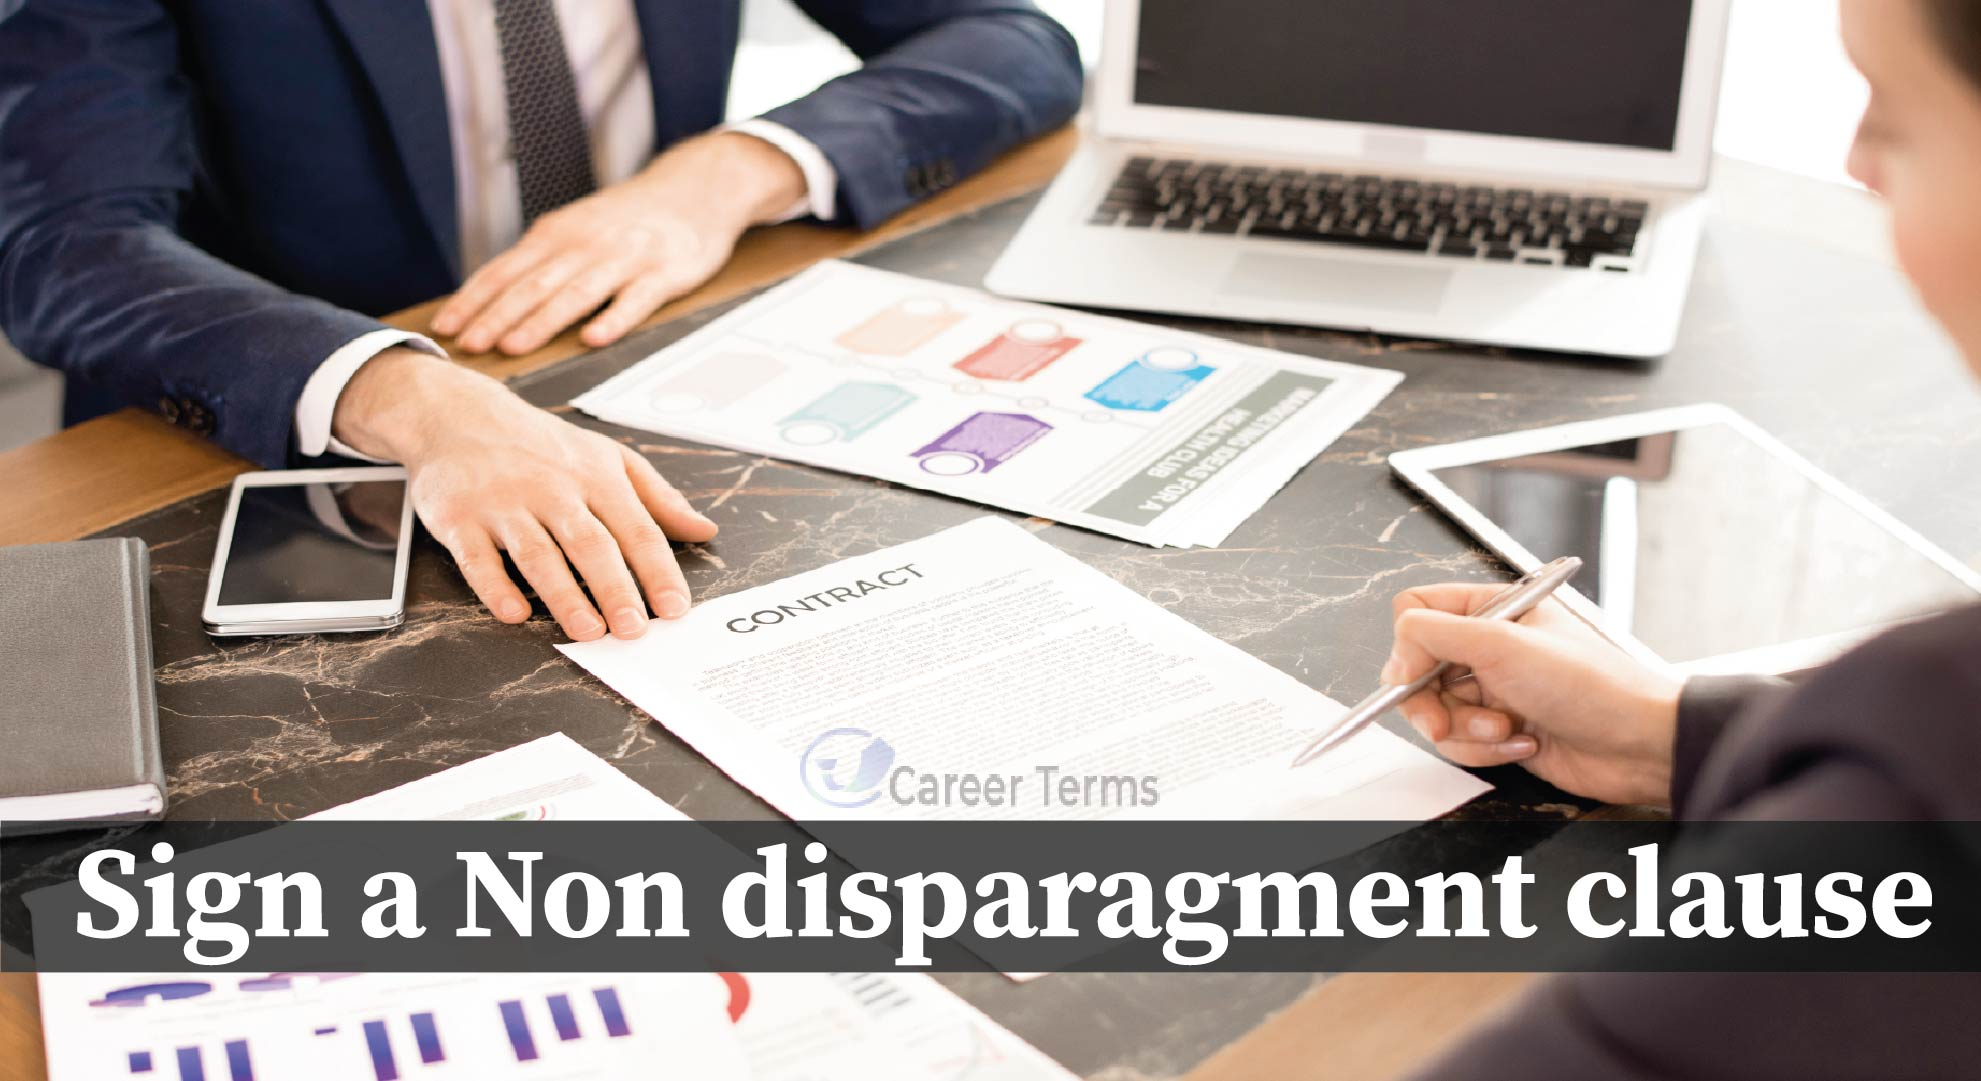 Should You Sign a Non disparagment clause